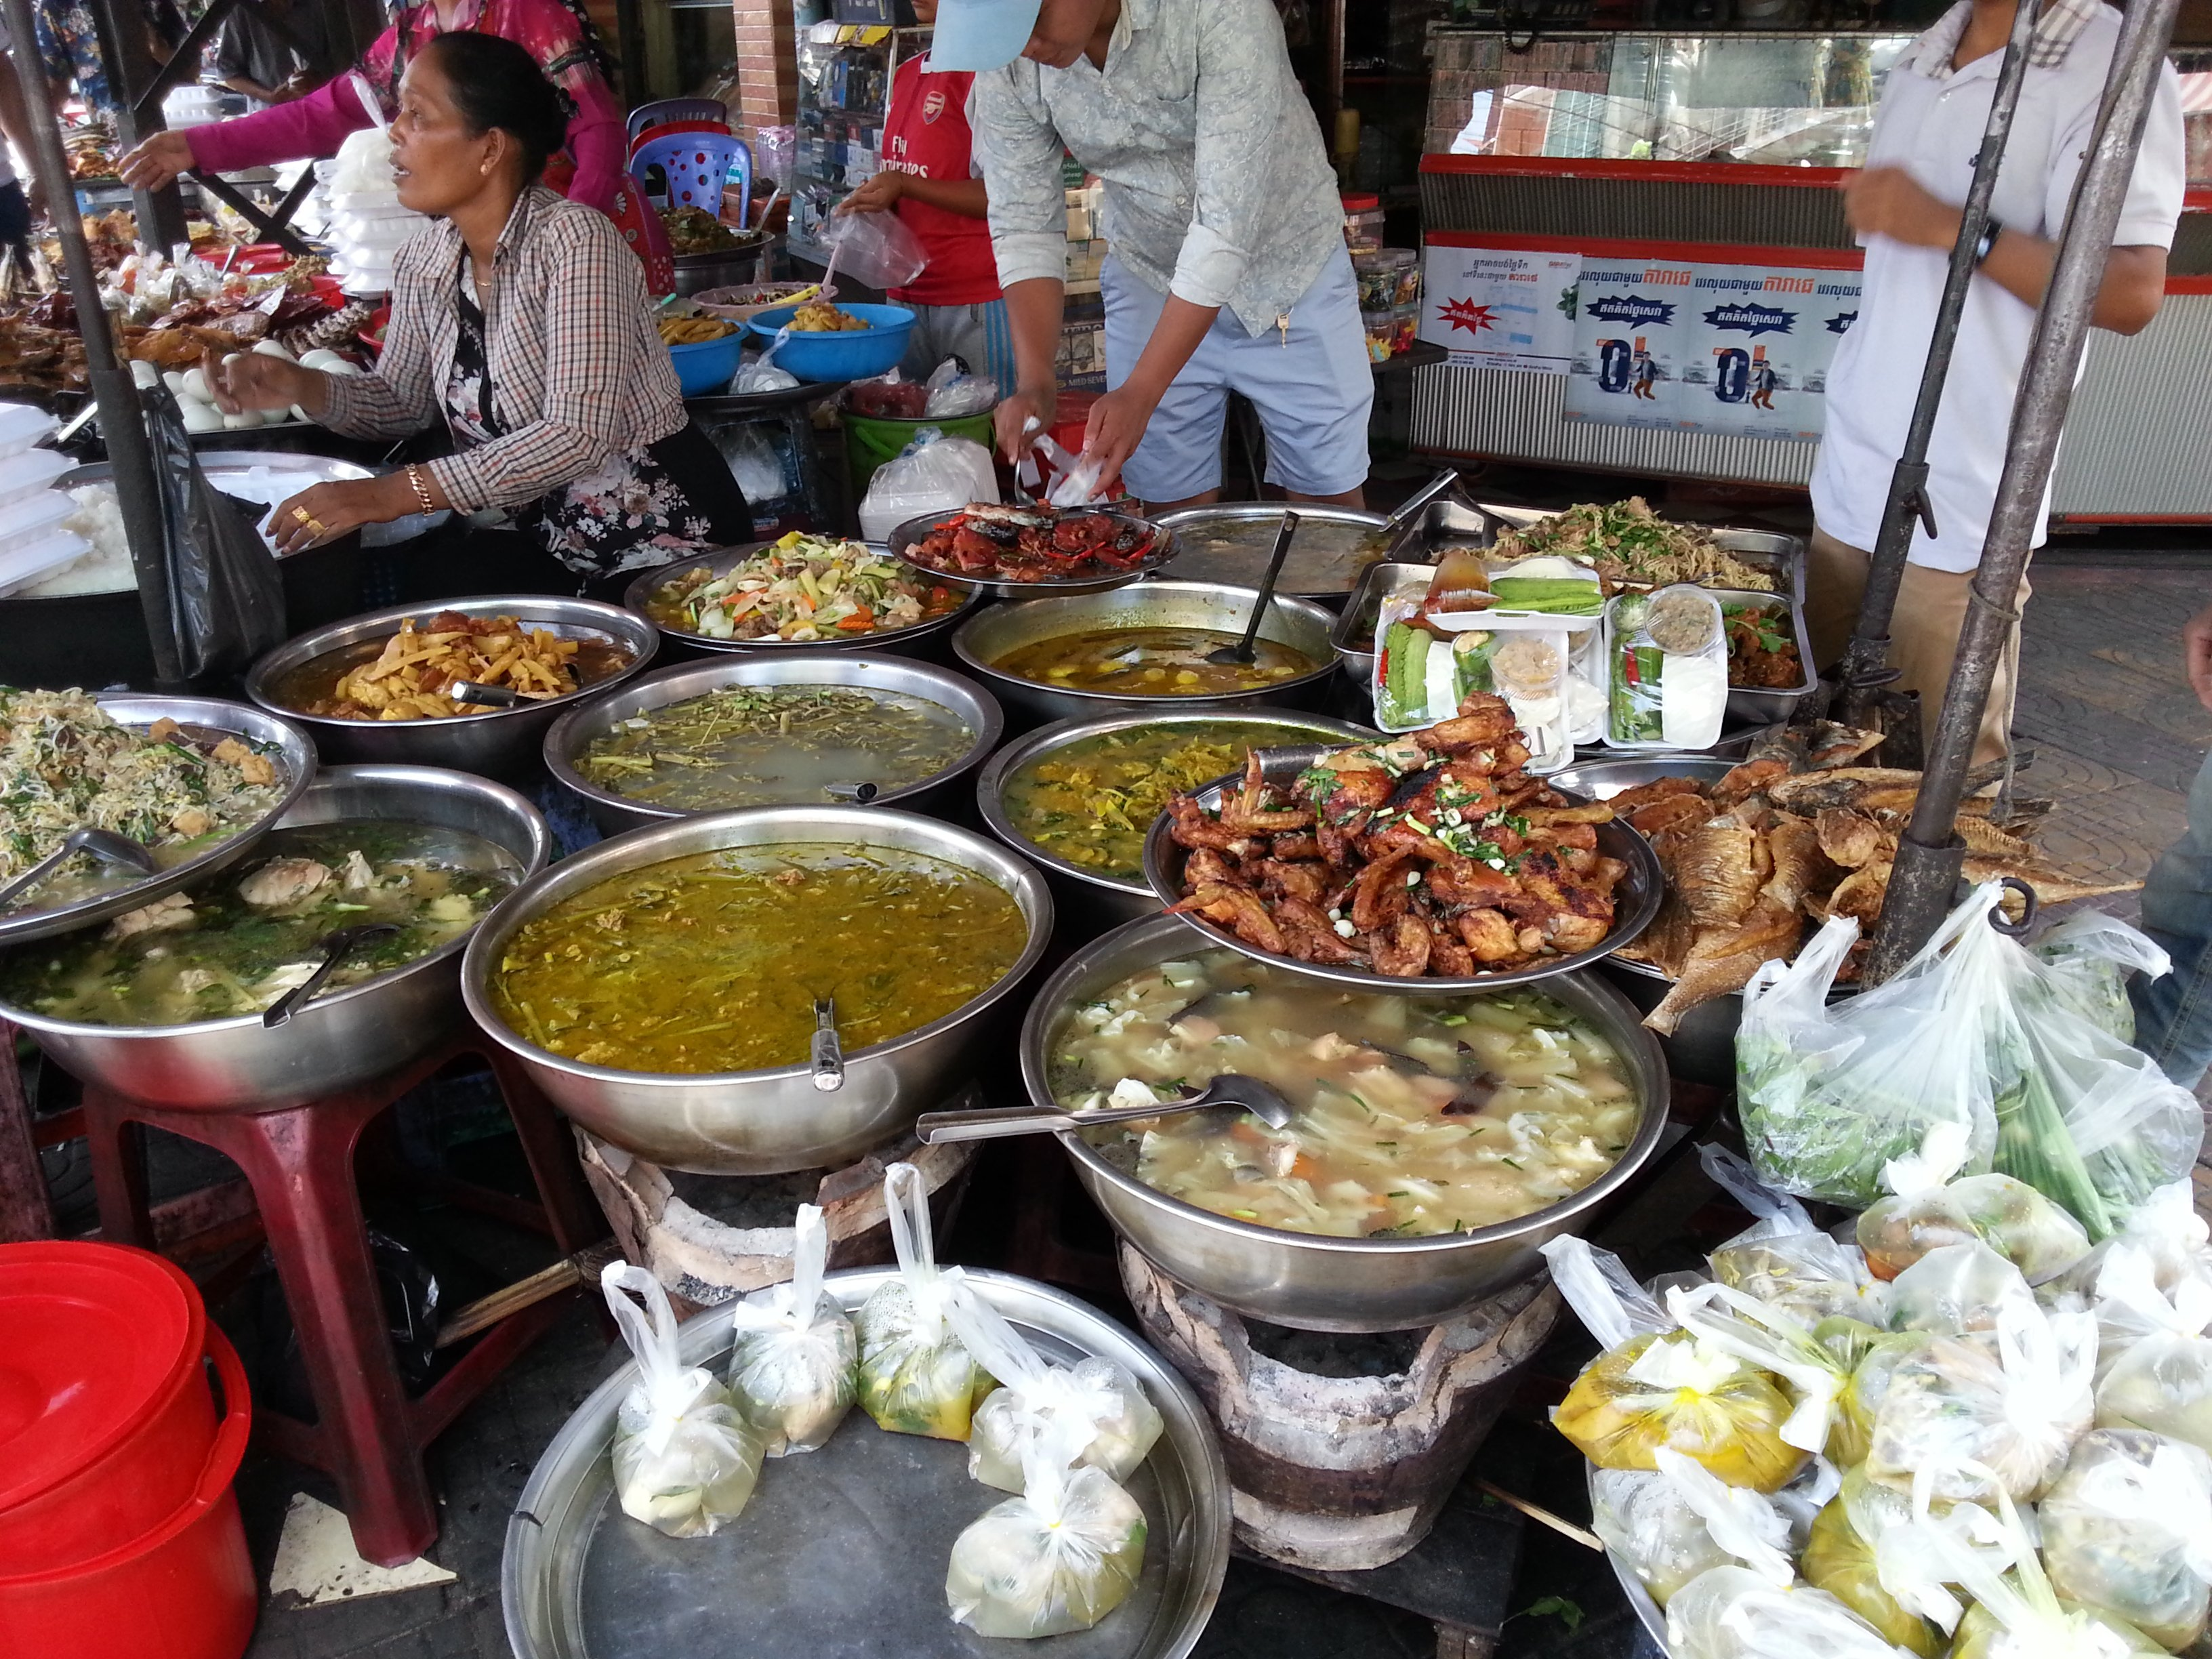 Food vendors on Street 13